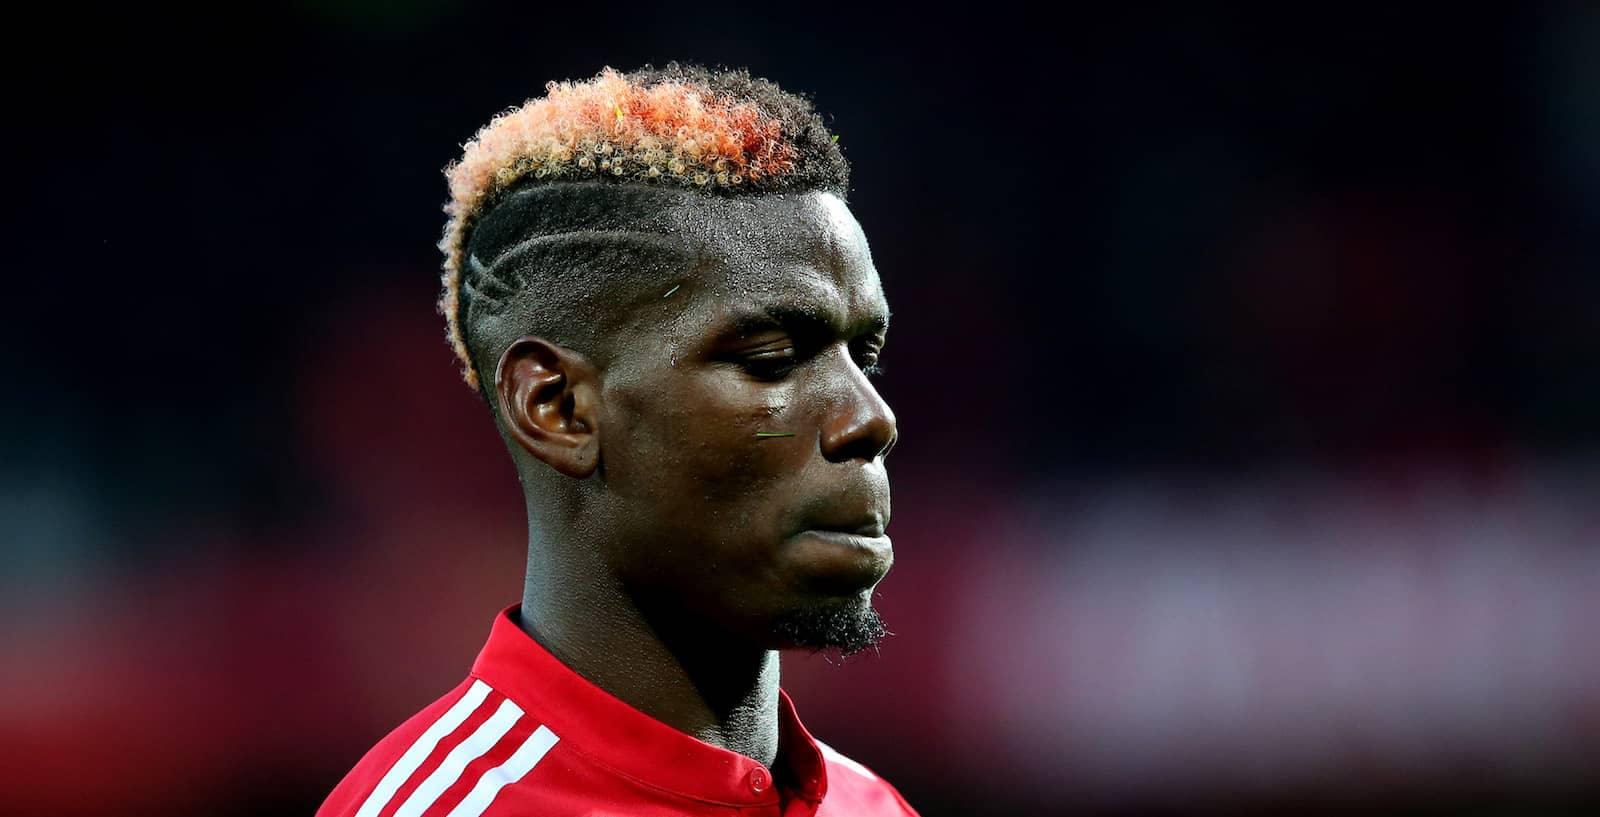 Jose Mourinho Insists Paul Pogba's Exit Resulted In Loss To Basel